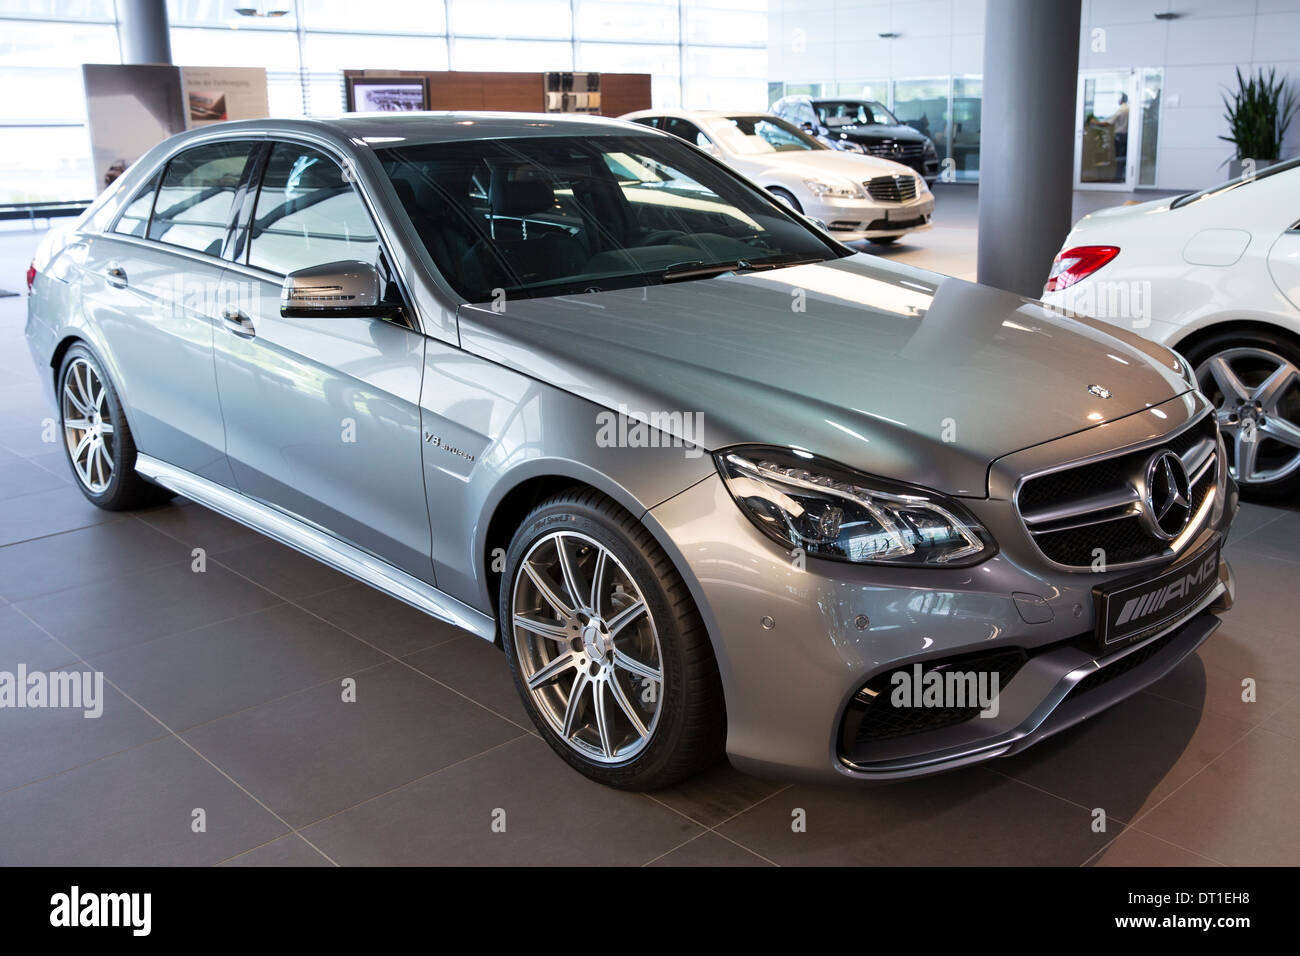 mercedes amg e63 amg v8 biturbo saloon car in mercedes amg showroom stock photo royalty free. Black Bedroom Furniture Sets. Home Design Ideas